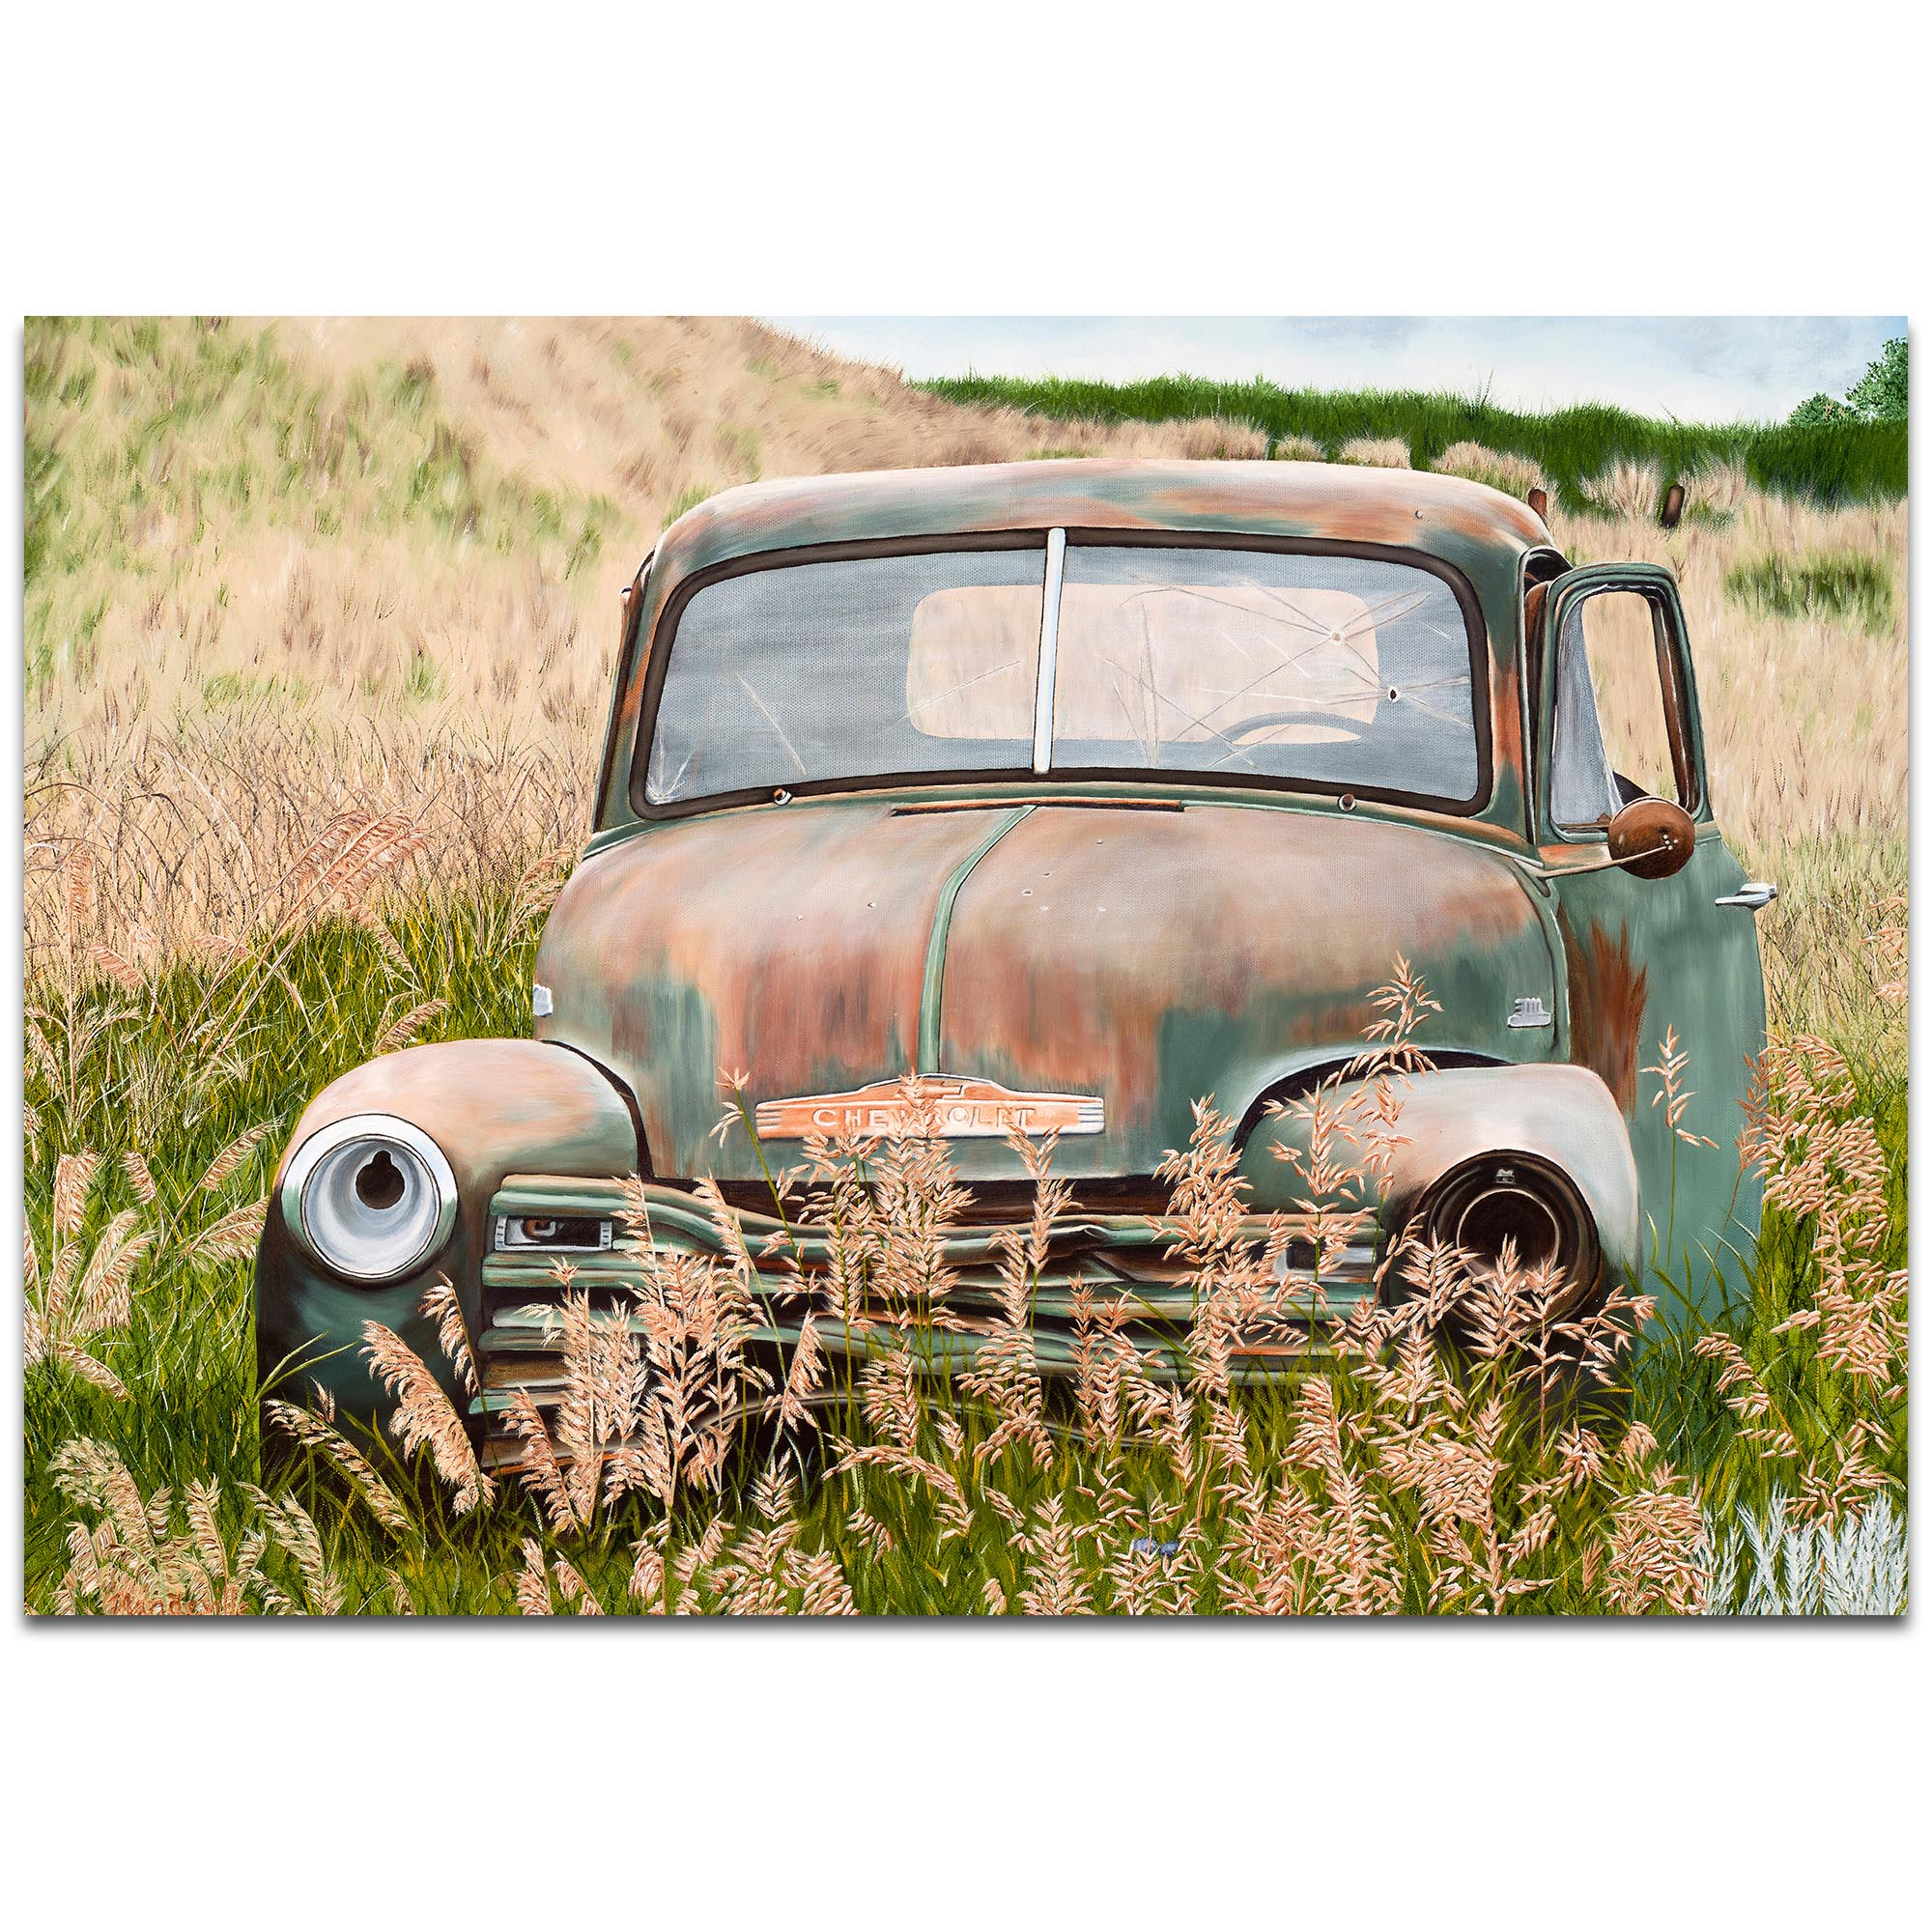 Americana Wall Art 'Franky's Truck' - Classic Trucks Decor on Metal or Plexiglass